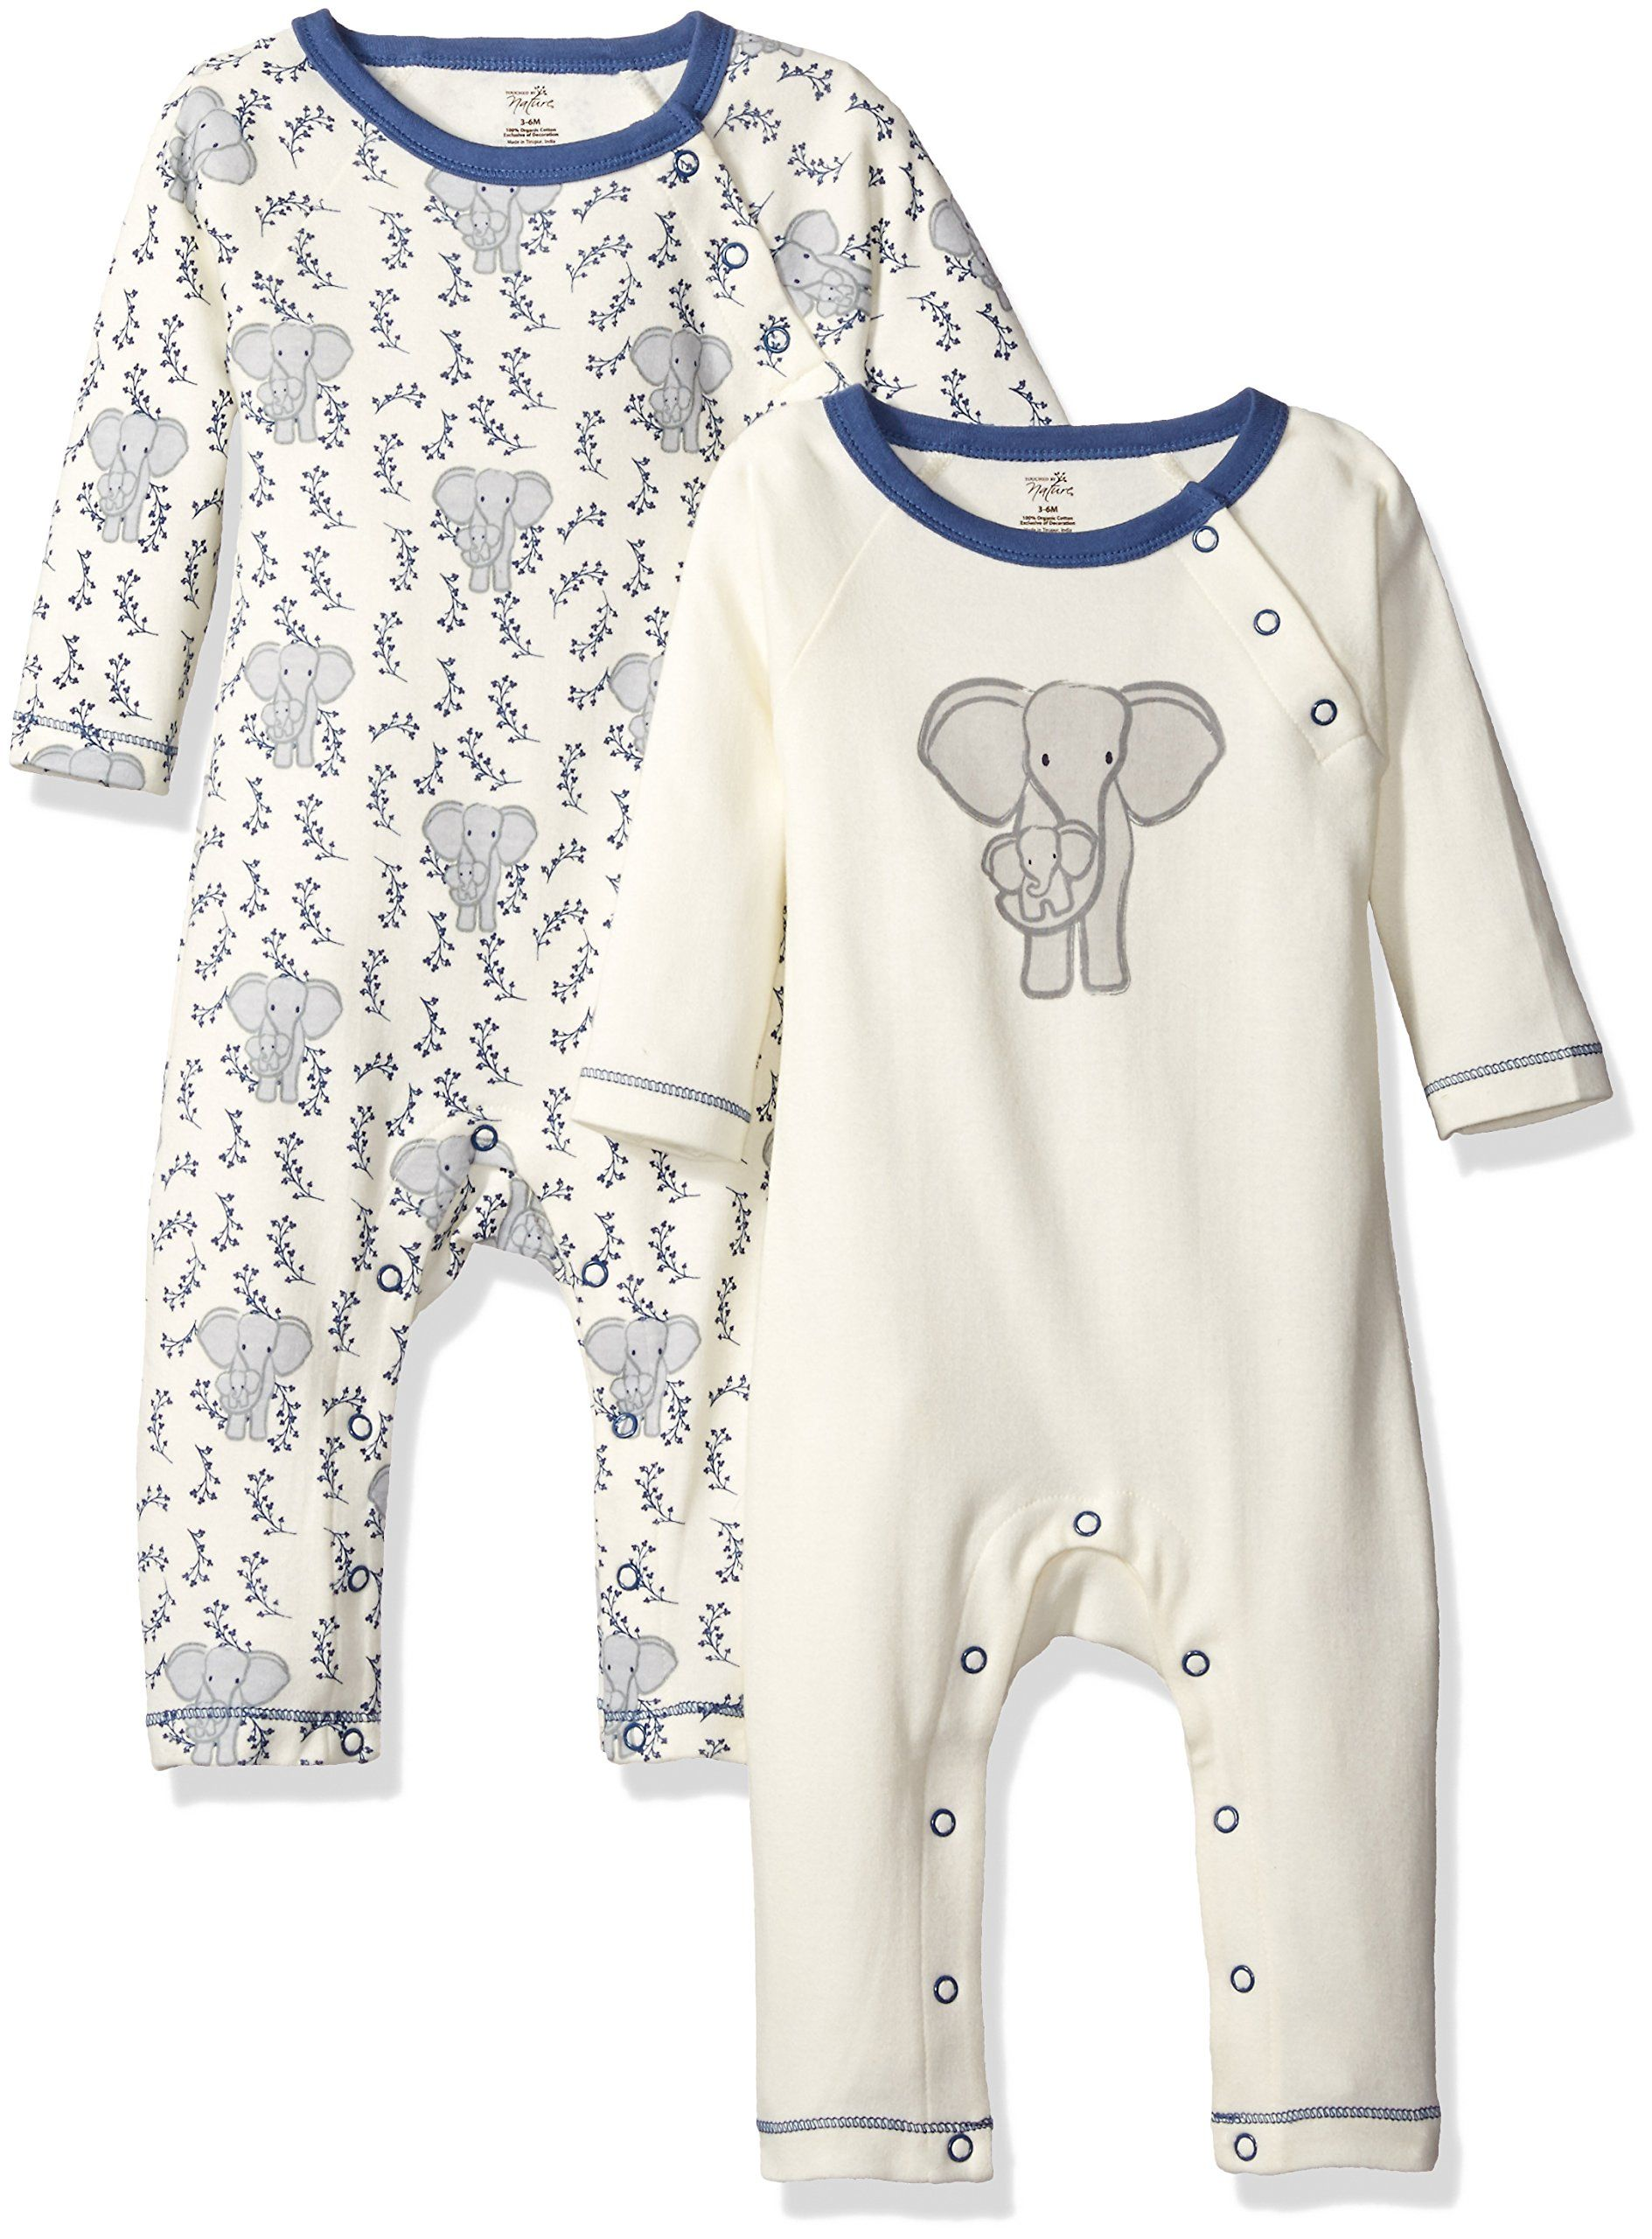 Touched By Nature Baby Organic Cotton Union Suit 2 Pack Elephant 9